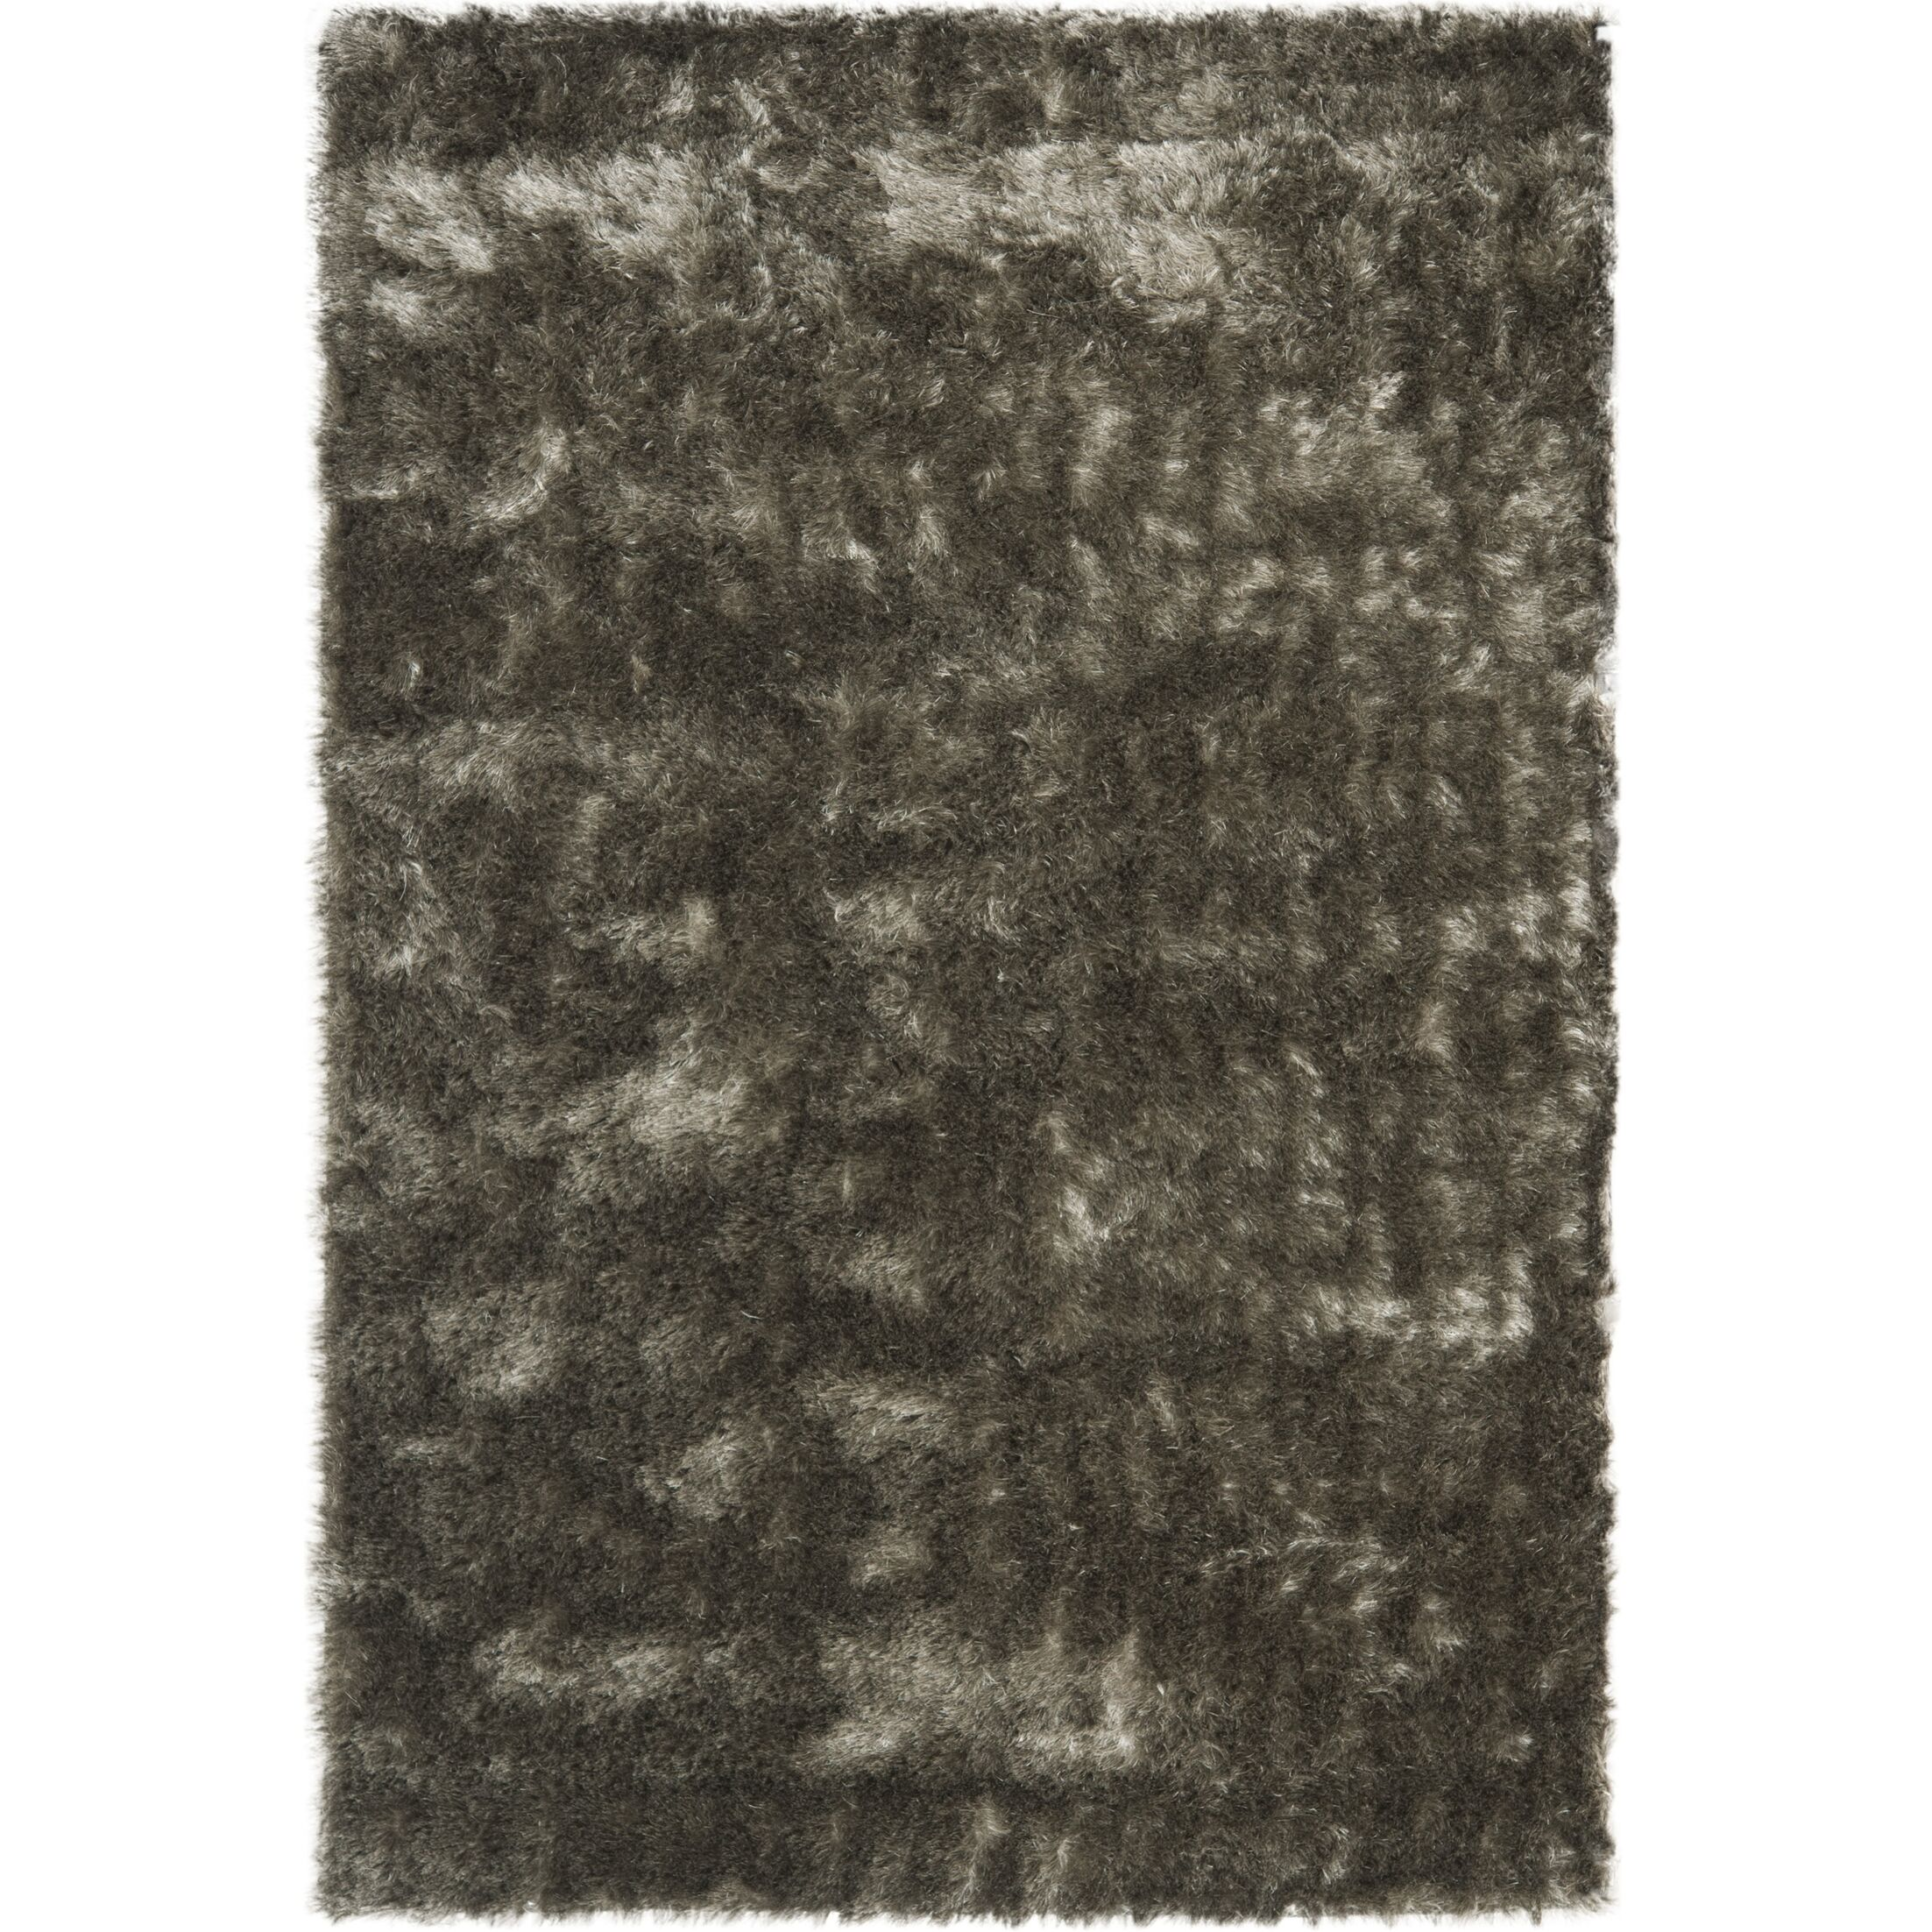 Montpelier Silver Area Rug Rug Size: Rectangle 11' x 15'